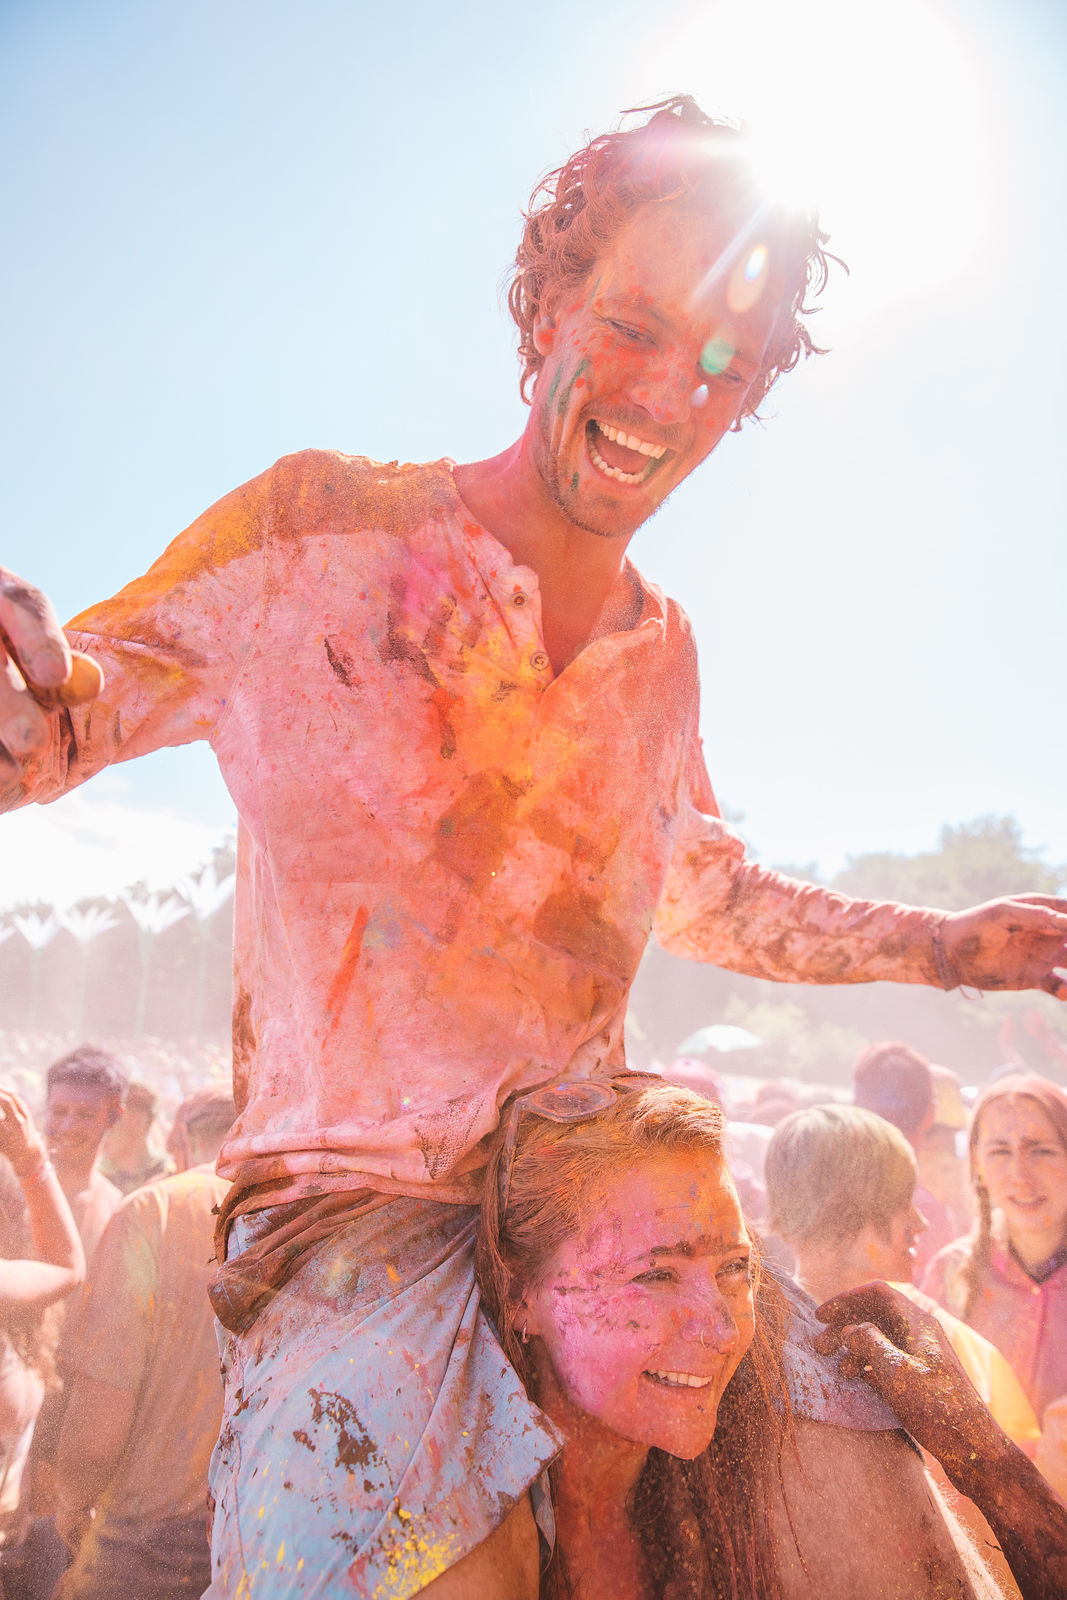 The Final Paint Fight